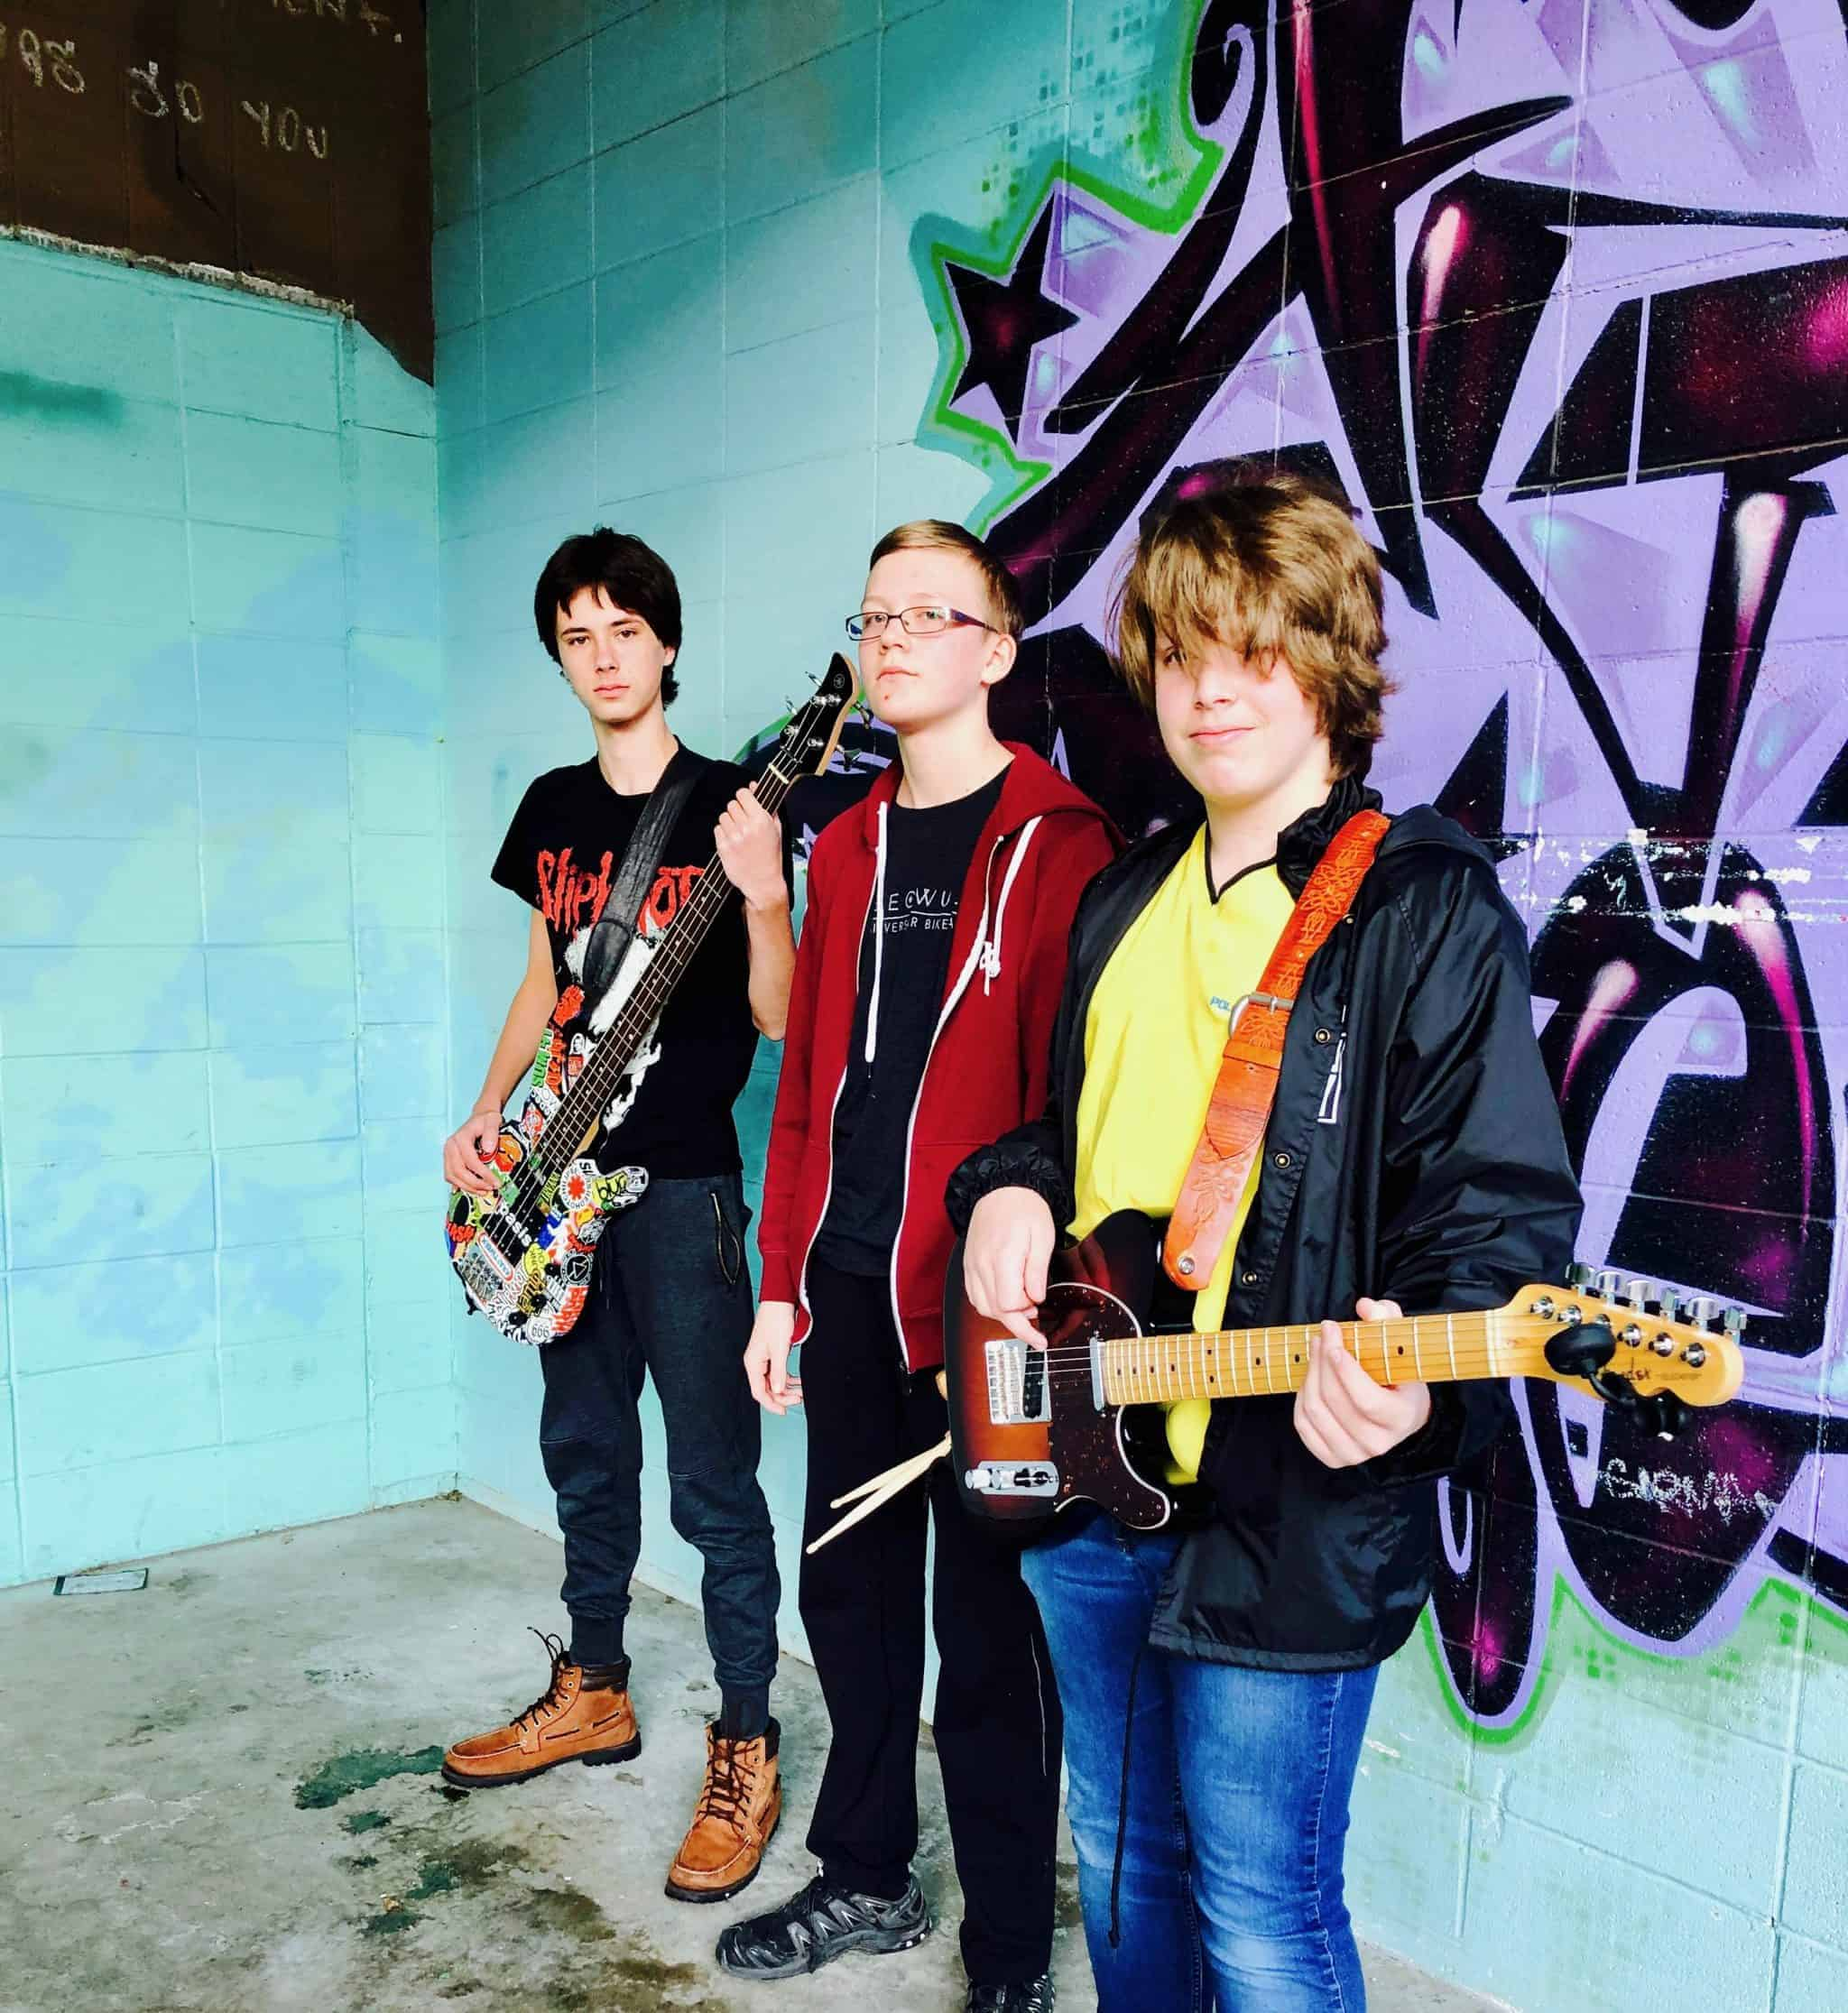 Skiing Uphill, a rock band at Backbeat - the place for rock bands and music lessons